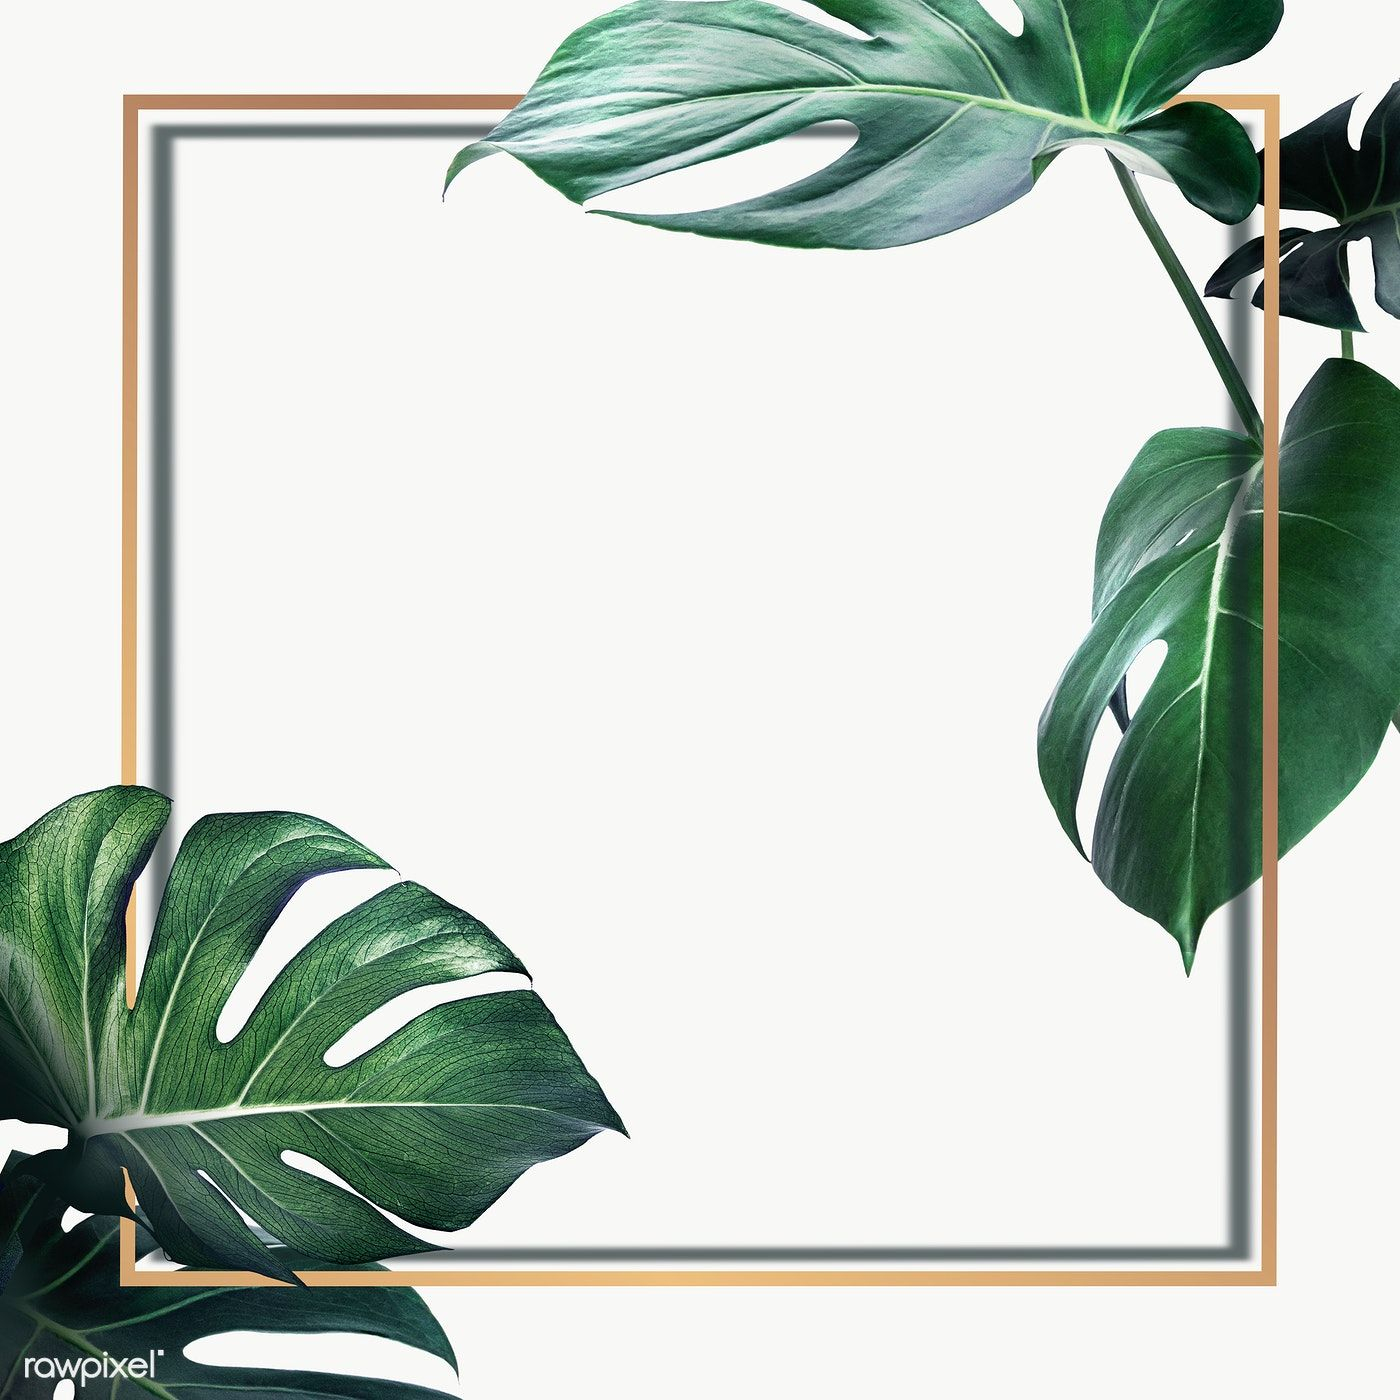 Golden Square Monstera Leaves Frame Design Resource Free Image By Rawpixel Com Gold Wallpaper Background Flower Background Wallpaper Floral Wallpaper Iphone